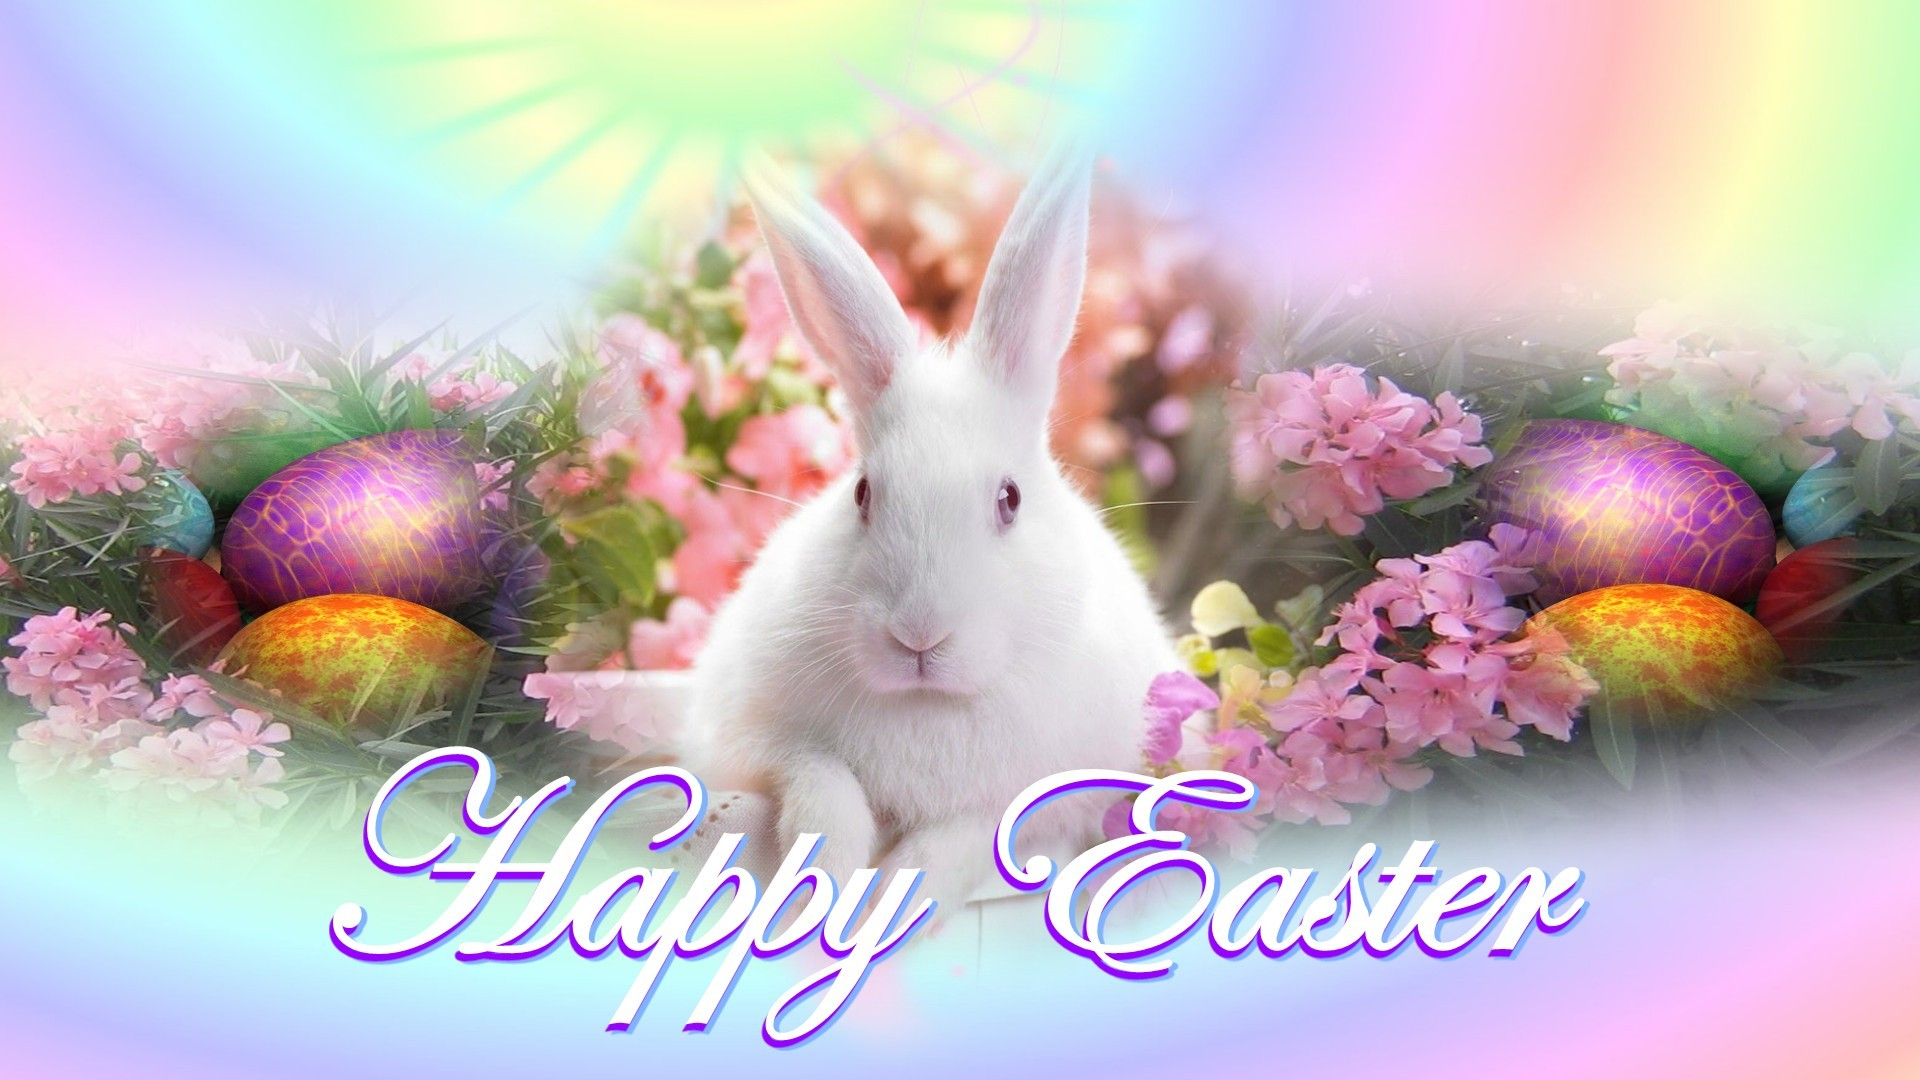 hd wallpaper happy easter bunny   Background Wallpapers for your 1920x1080